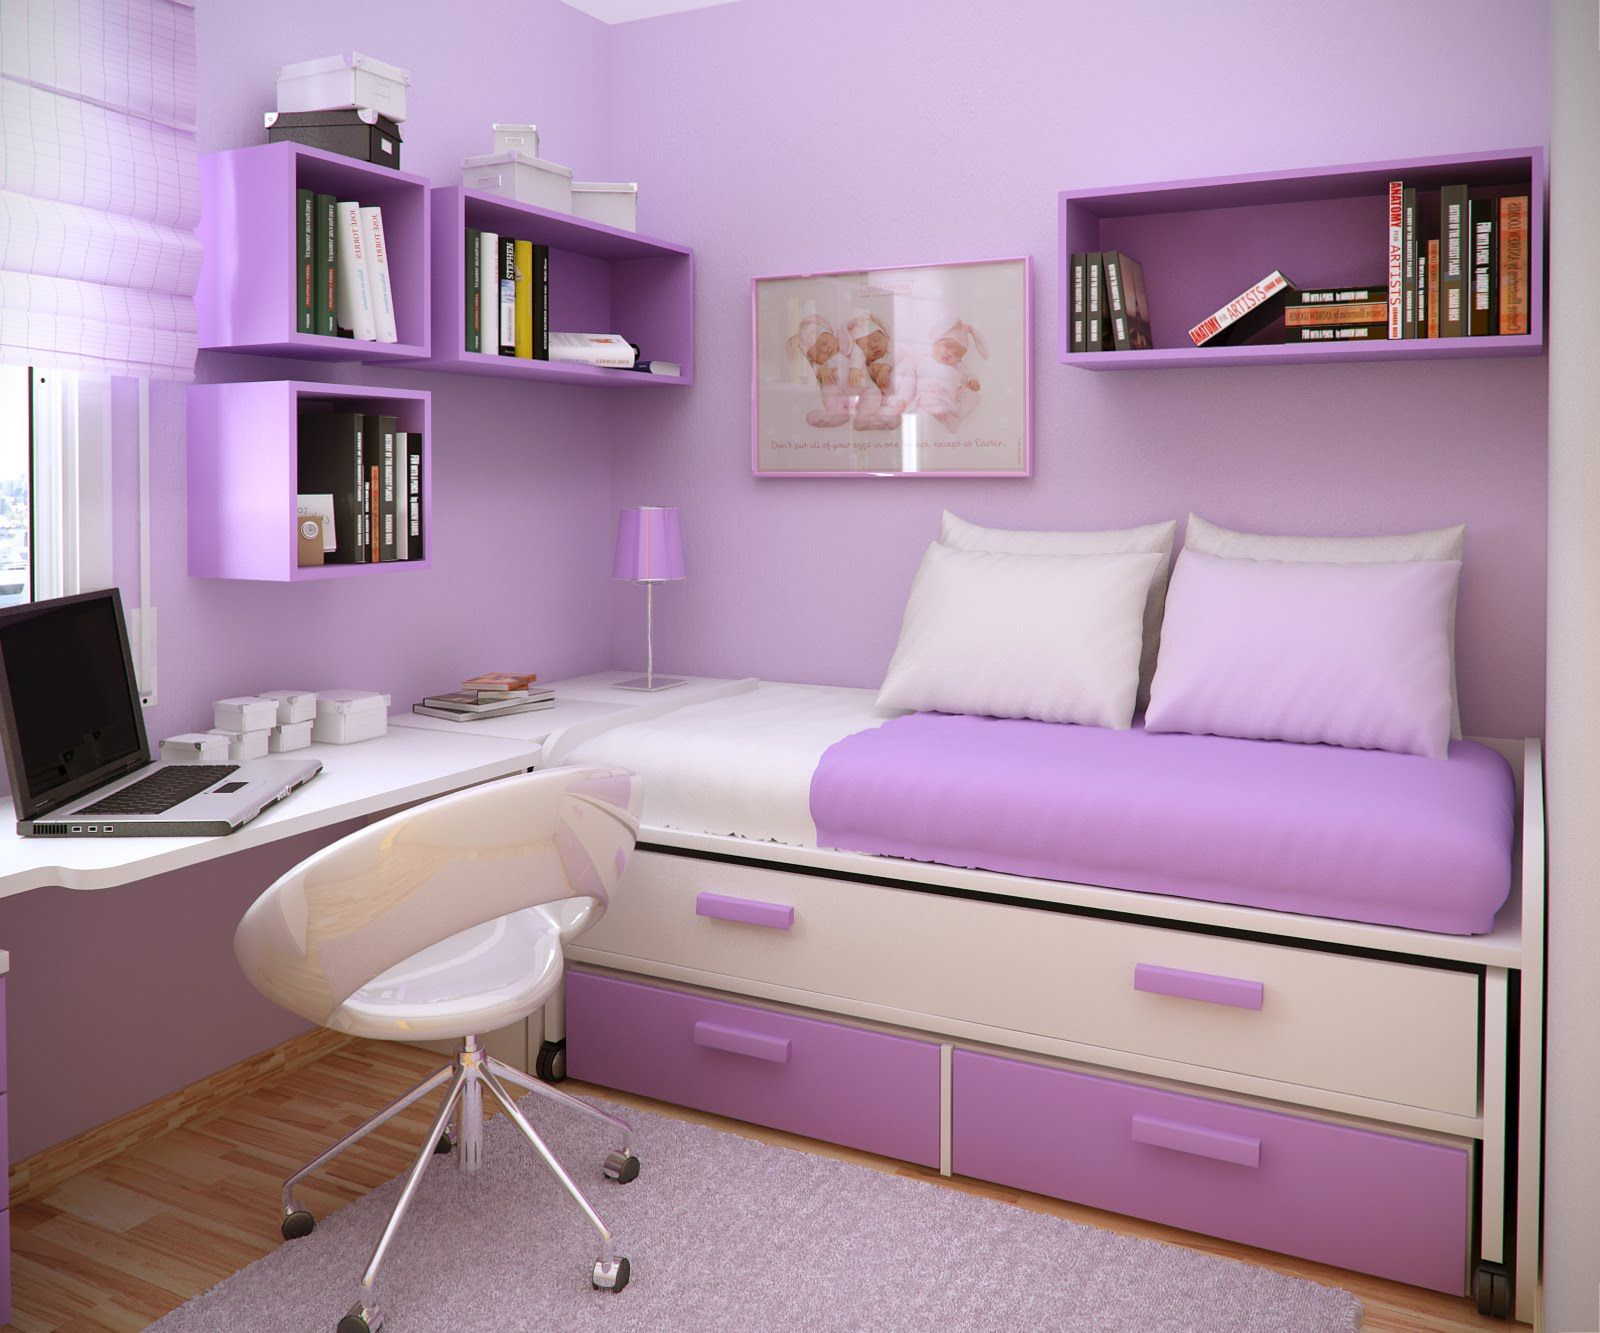 Apartment bedroom for girls - Chic Girls Purple Bedrooms Furnishing Design With Floating Booksheleves Over Sleeper Couch Storage In Small Space